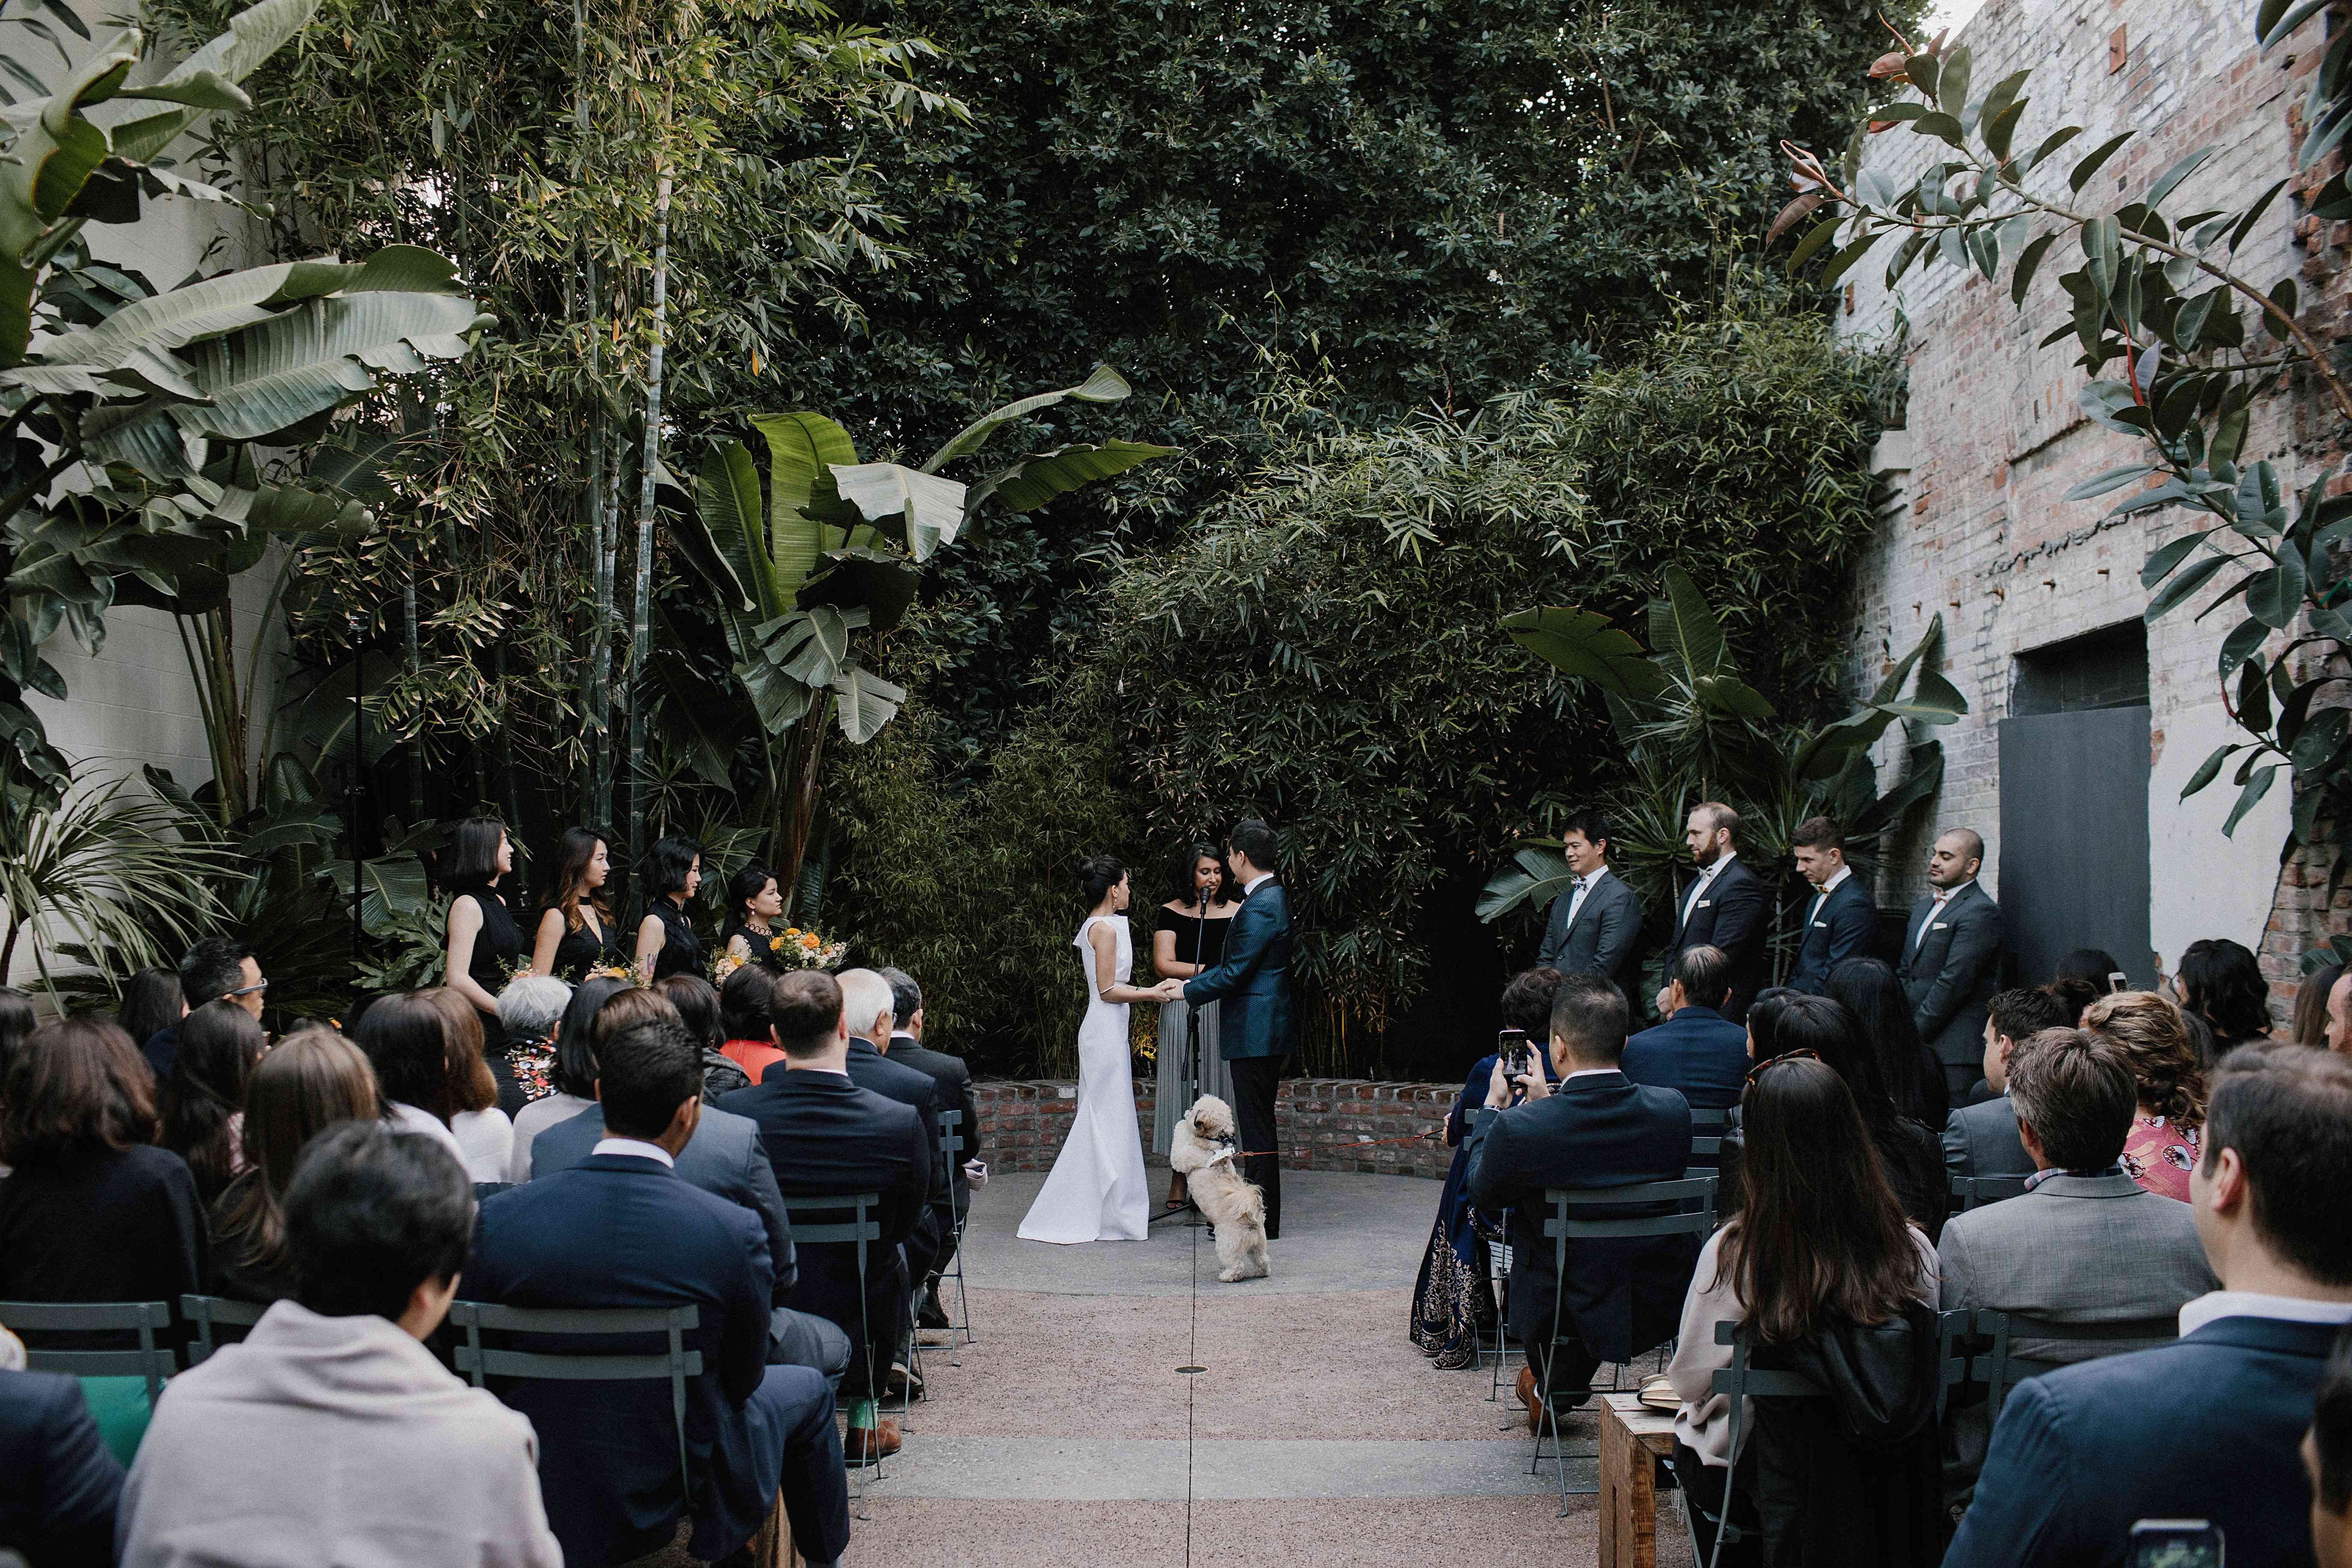 <p>Bride and groom at ceremony with dog</p><br><br>